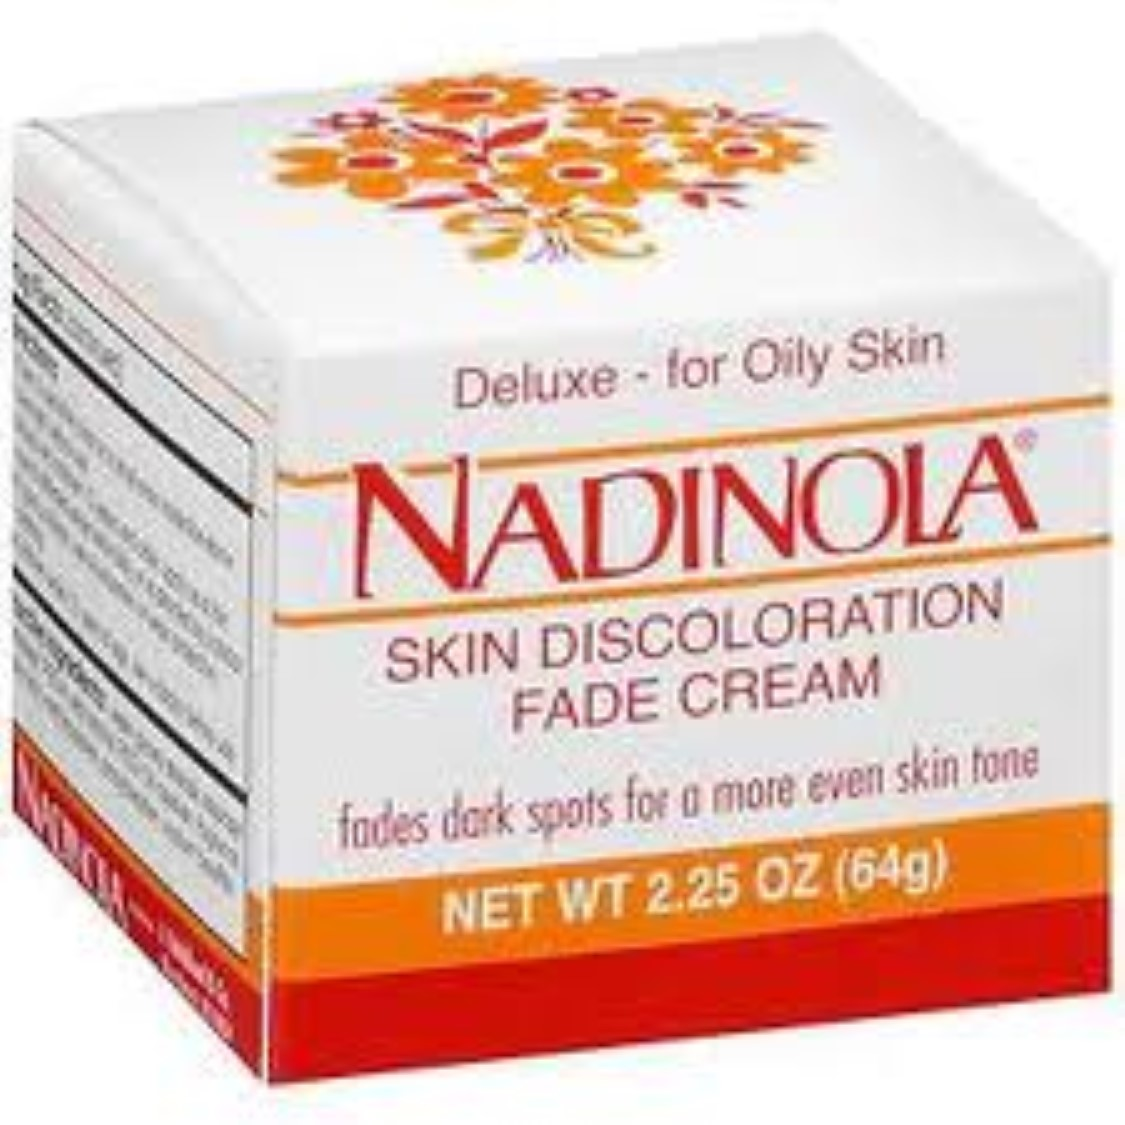 Nadinola Deluxe Skin Discoloration Fade Cream for Oily Skin 2.25 oz